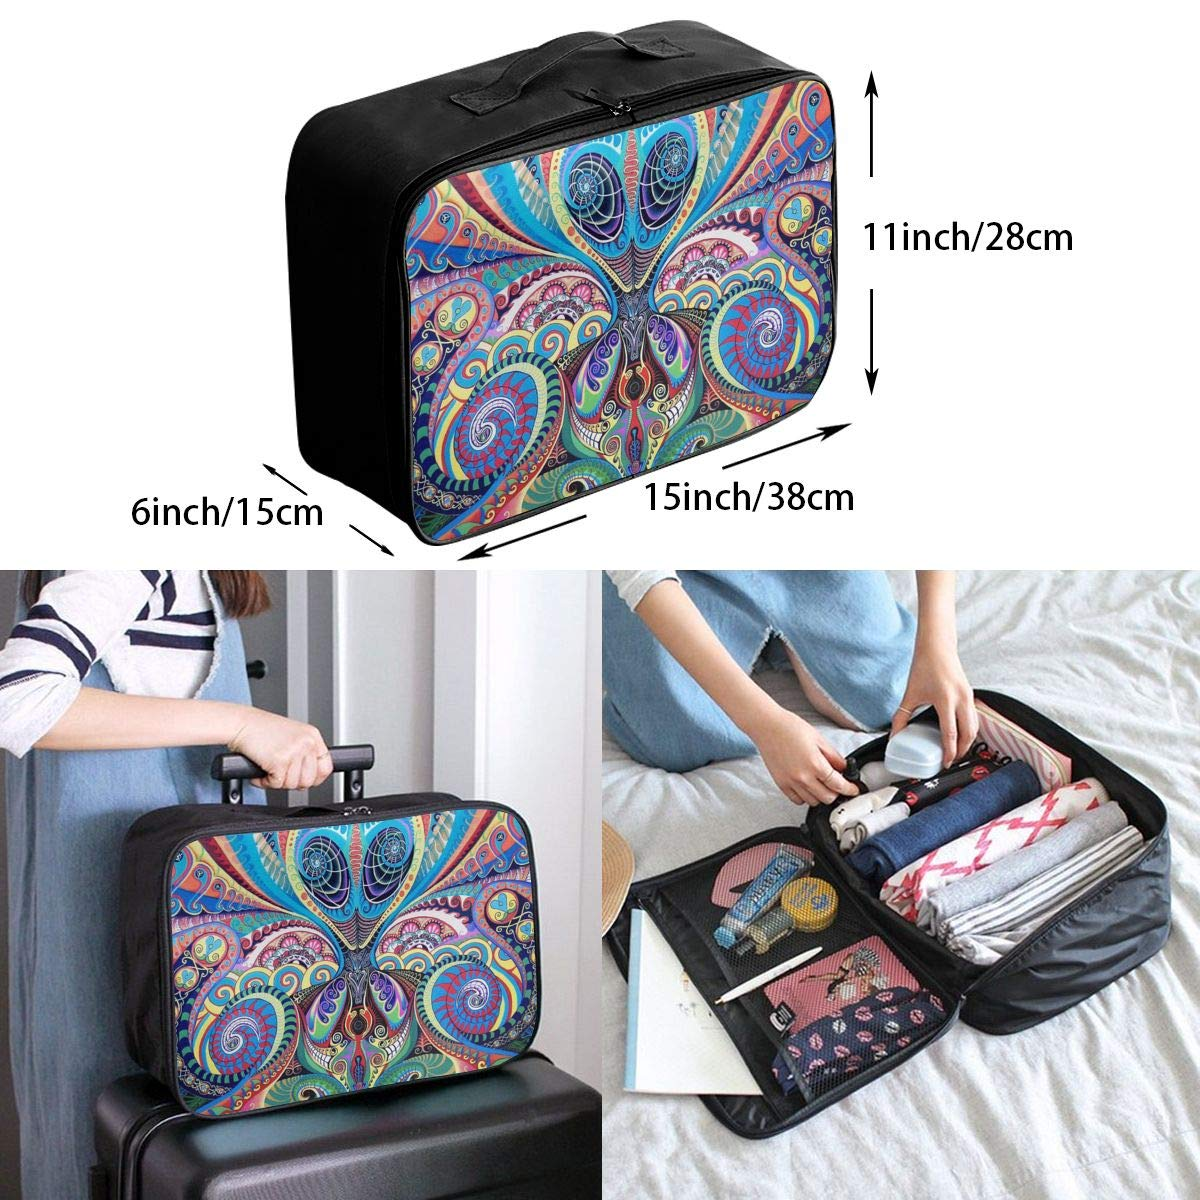 Psychedelic Trippy Art Travel Duffel Bag Waterproof Fashion Lightweight Large Capacity Portable Luggage Bag